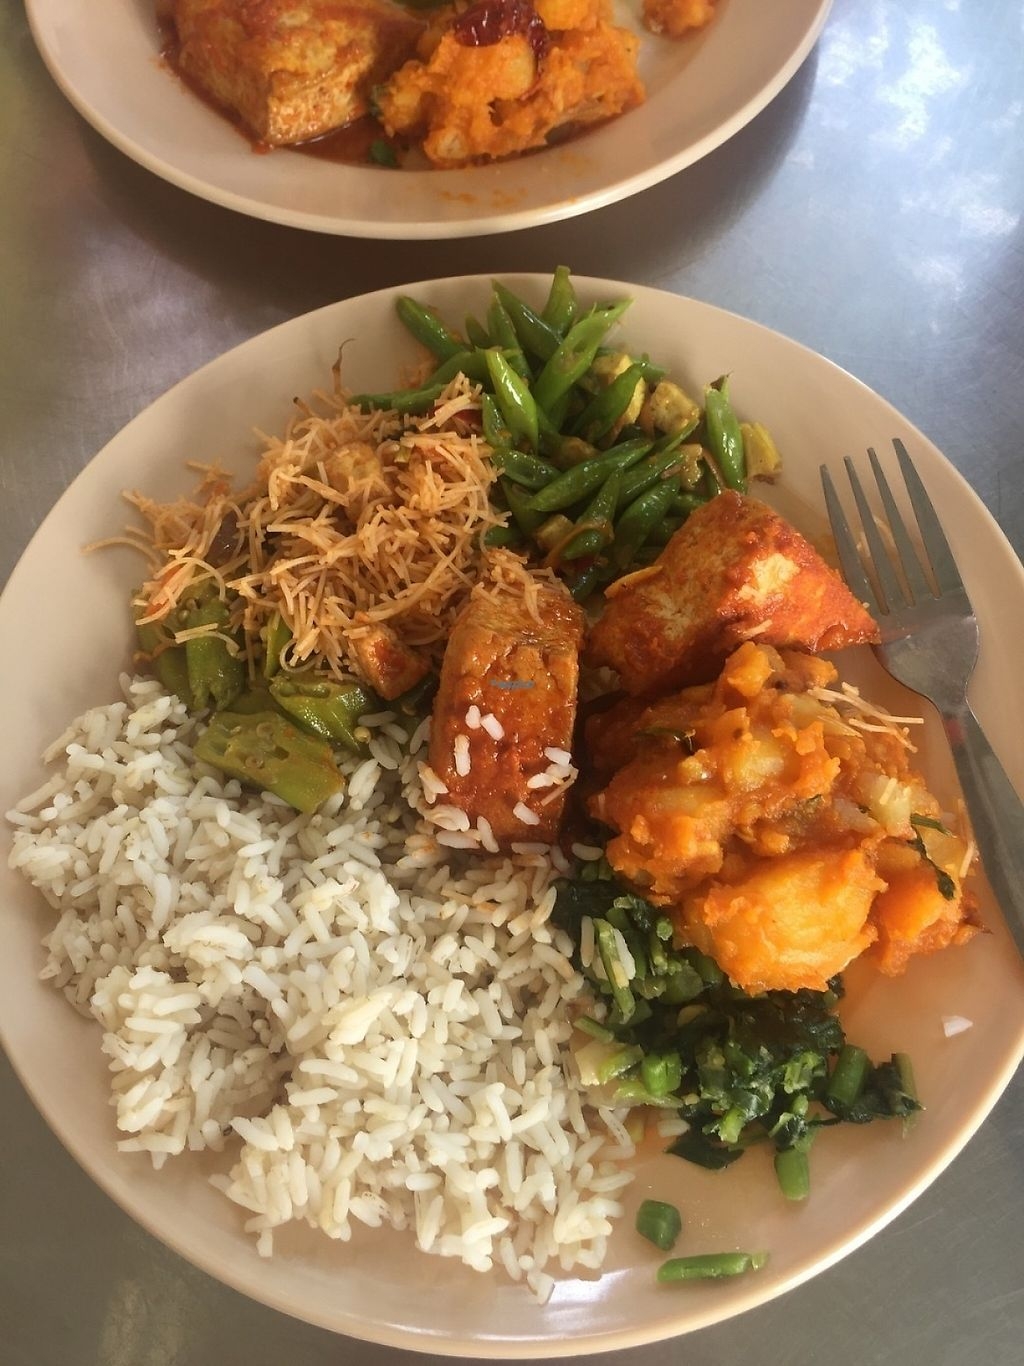 """Photo of Arati Vilas Banana Leaf Restaurant  by <a href=""""/members/profile/The%20London%20Vegan"""">The London Vegan</a> <br/>Delicious buffet style curries and veg  <br/> December 30, 2016  - <a href='/contact/abuse/image/52667/206065'>Report</a>"""